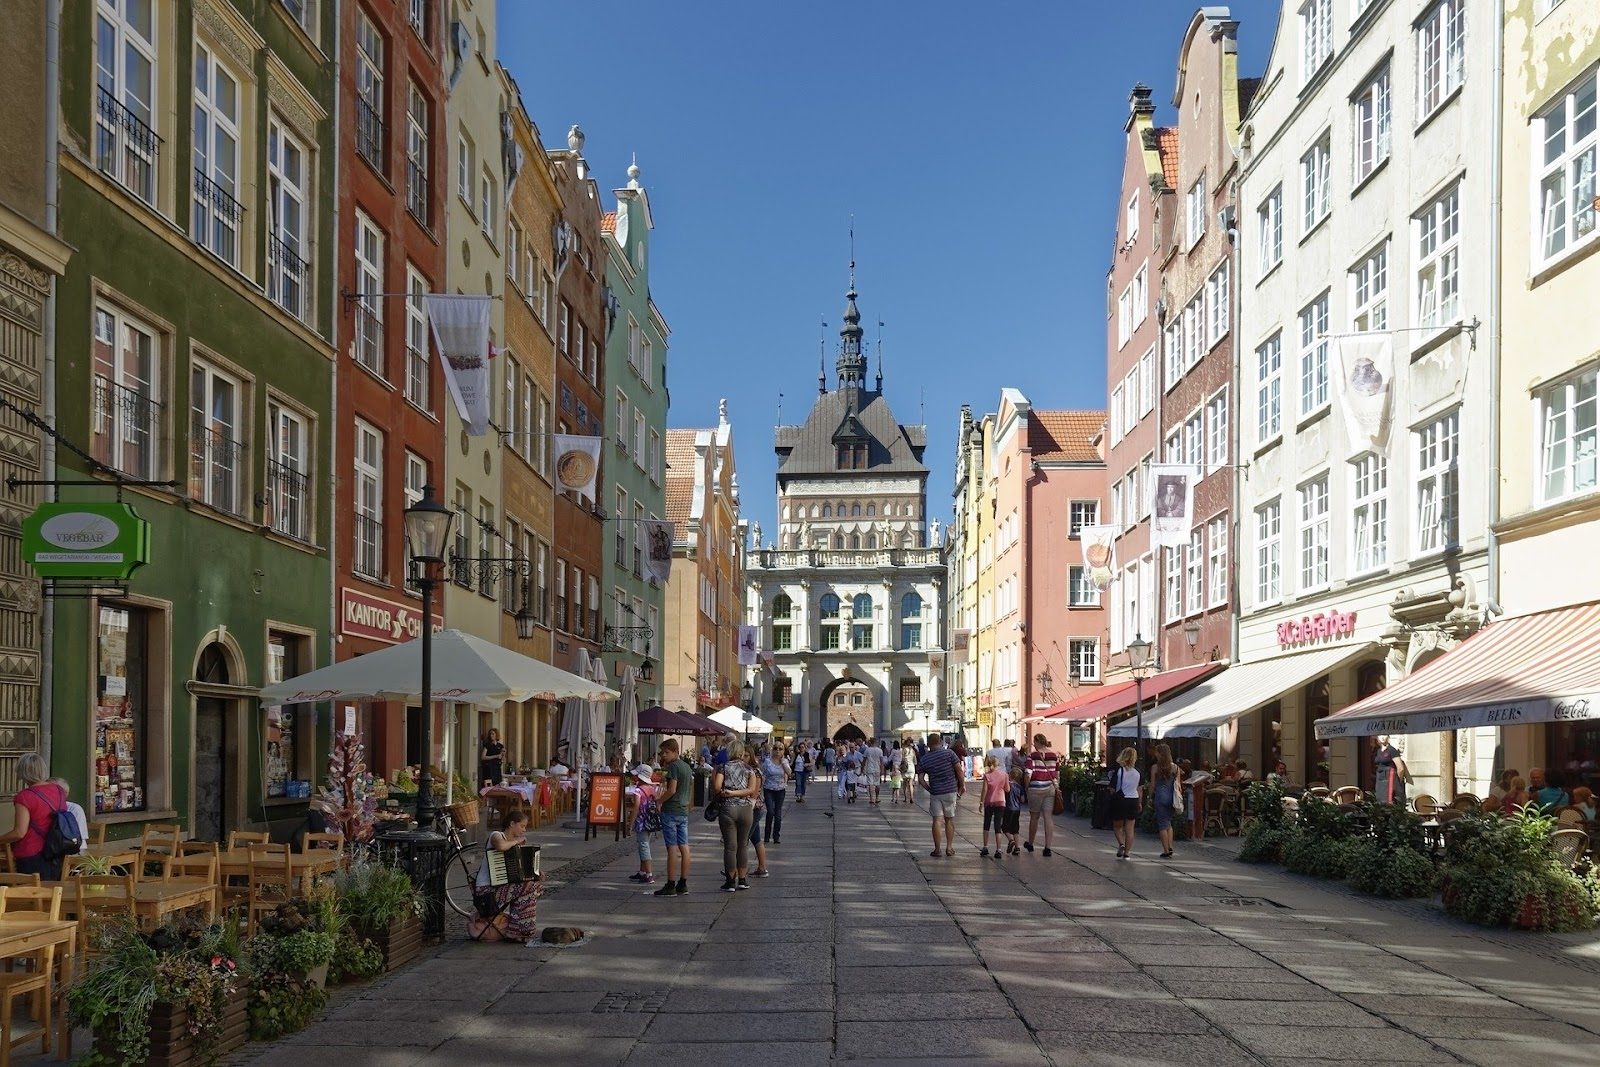 gdansk old town in summer colorful medieval buildings cobblestone road people restaurants poland